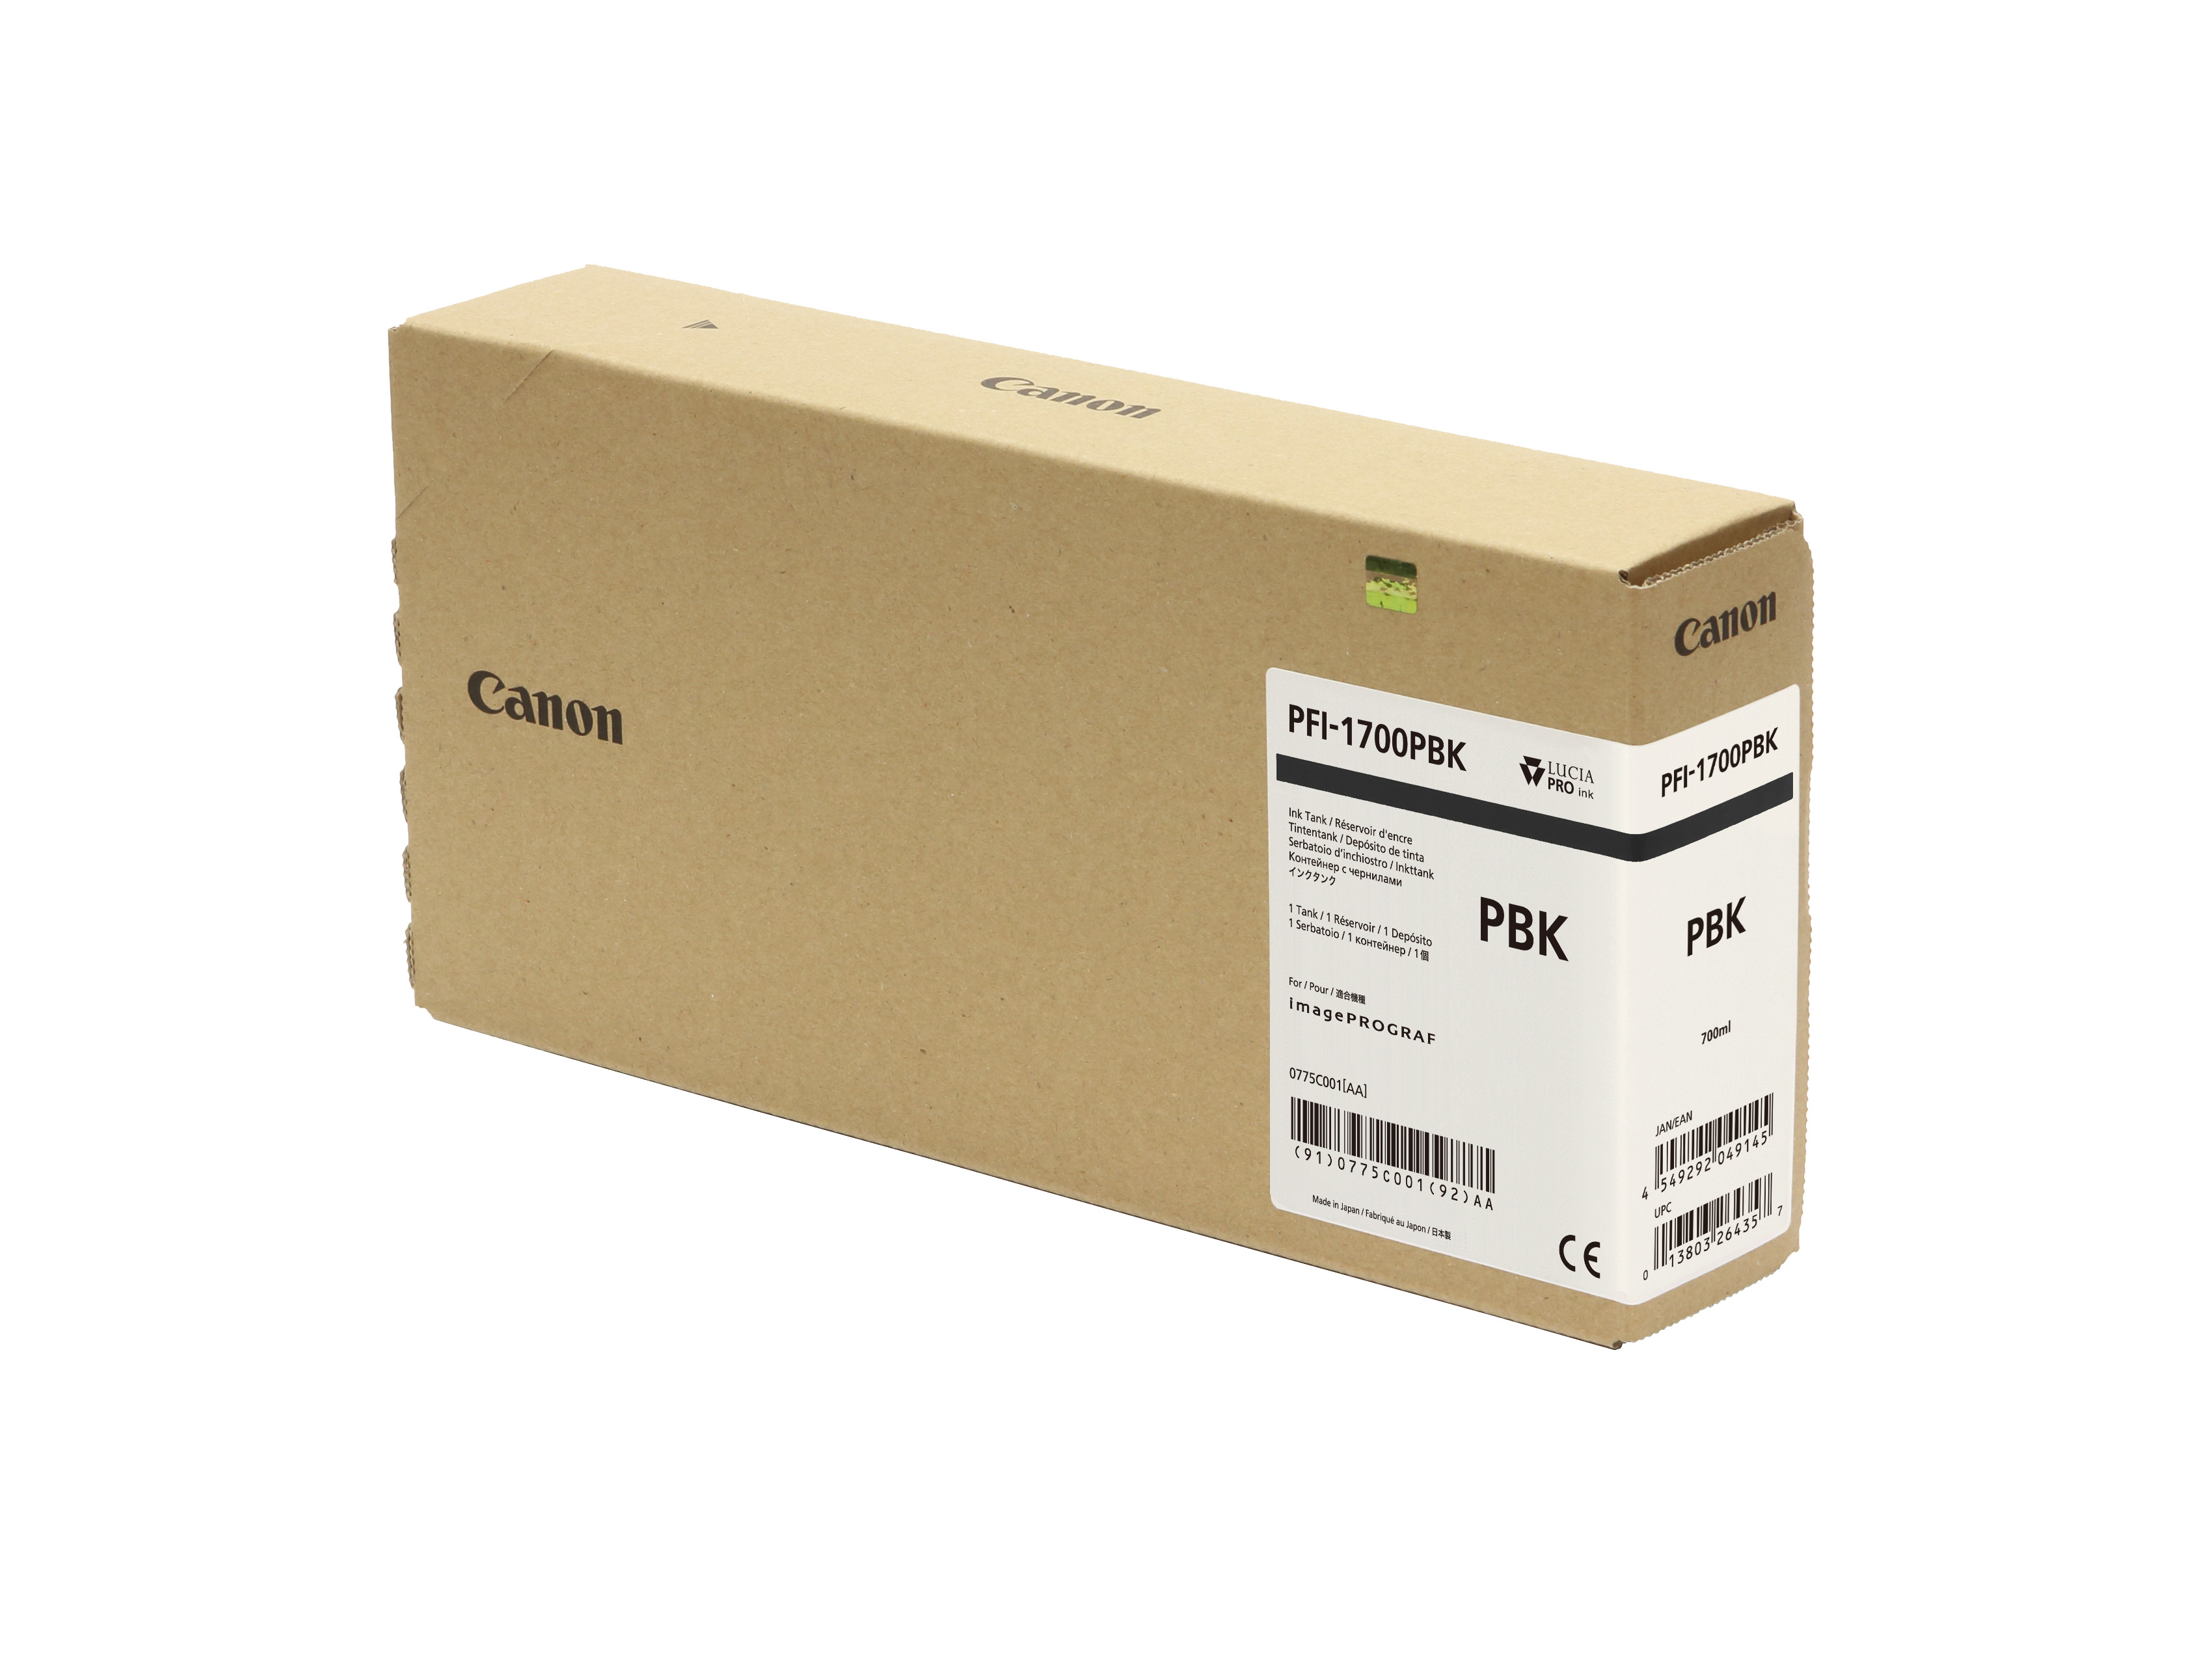 Canon PFI-1700PBK Photo Black Ink Tank - 700ml Cartridge - for Canon PRO-2000, PRO-4000, PRO-4000S & PRO-6000S Printer - 0775C001AA - next day delivery from GDS Graphic Design Supplies Ltd